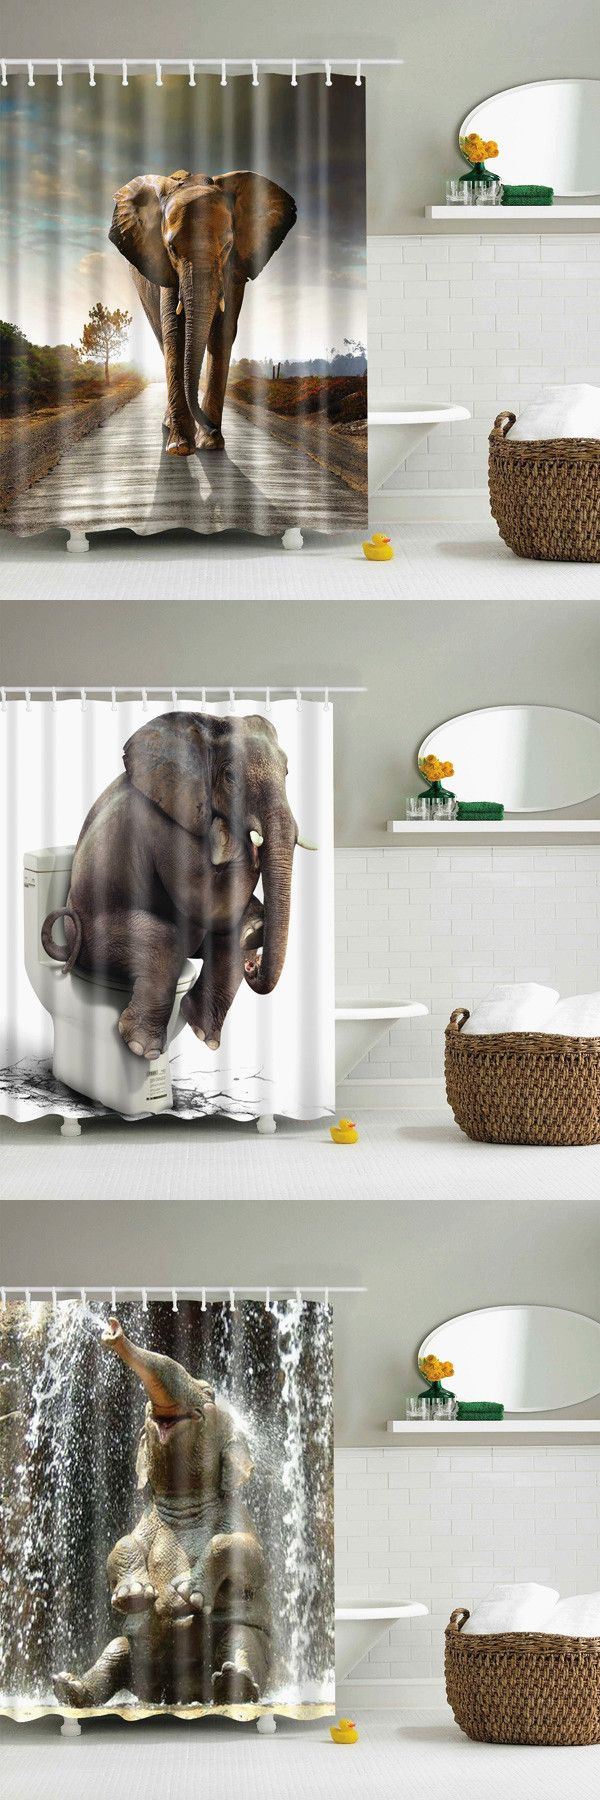 Elephant Sunset Bathroom Shower Curtain - Brown